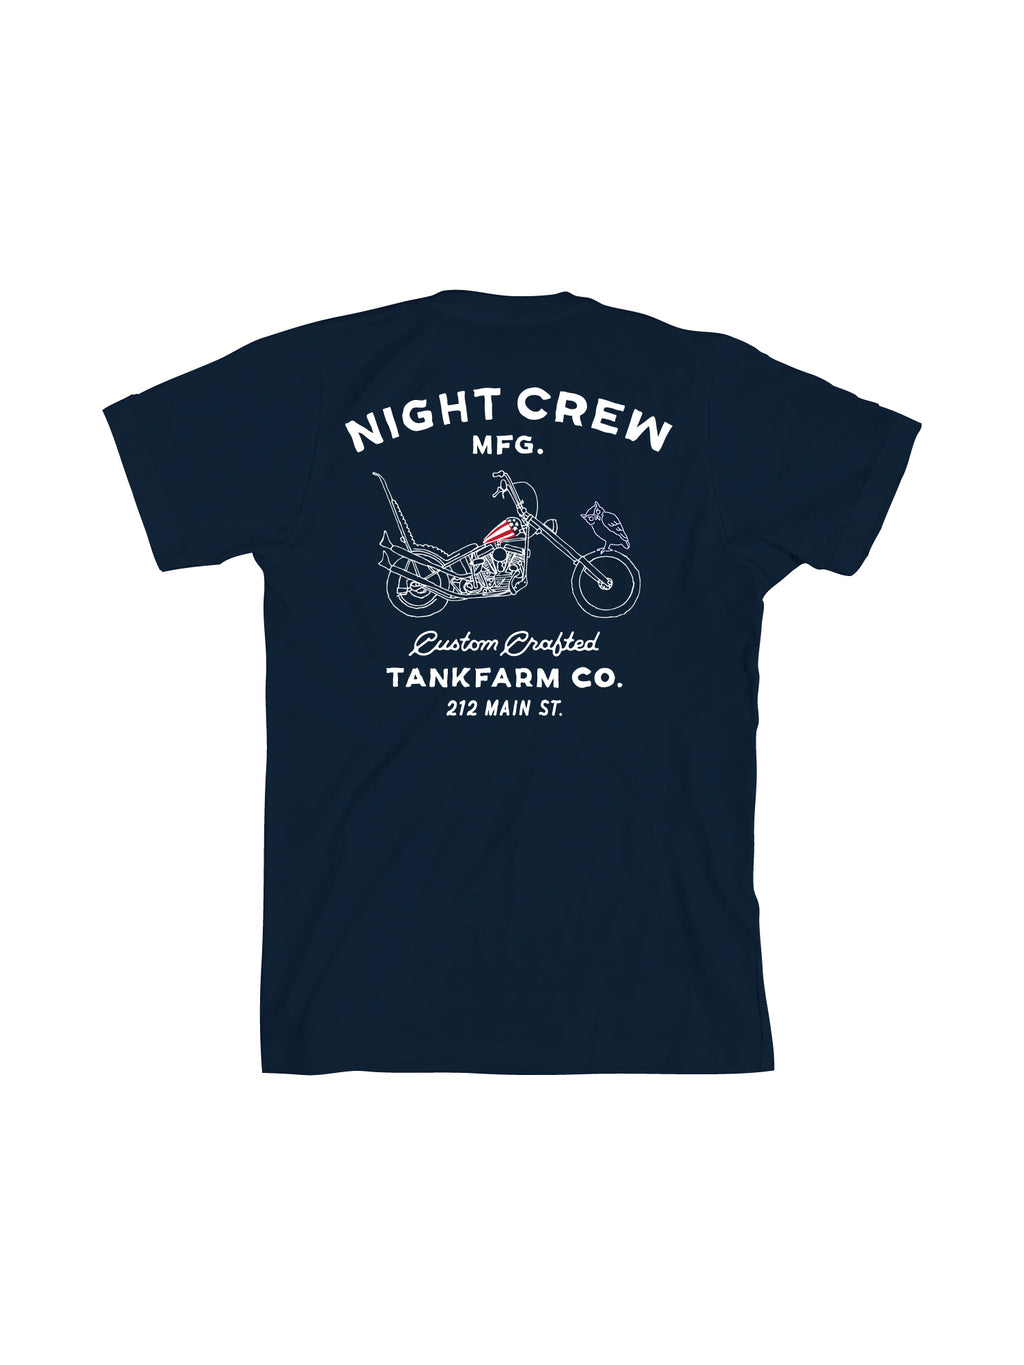 NIGHT CREW MANUFACTURING - NAVY - Tankfarm & Co.